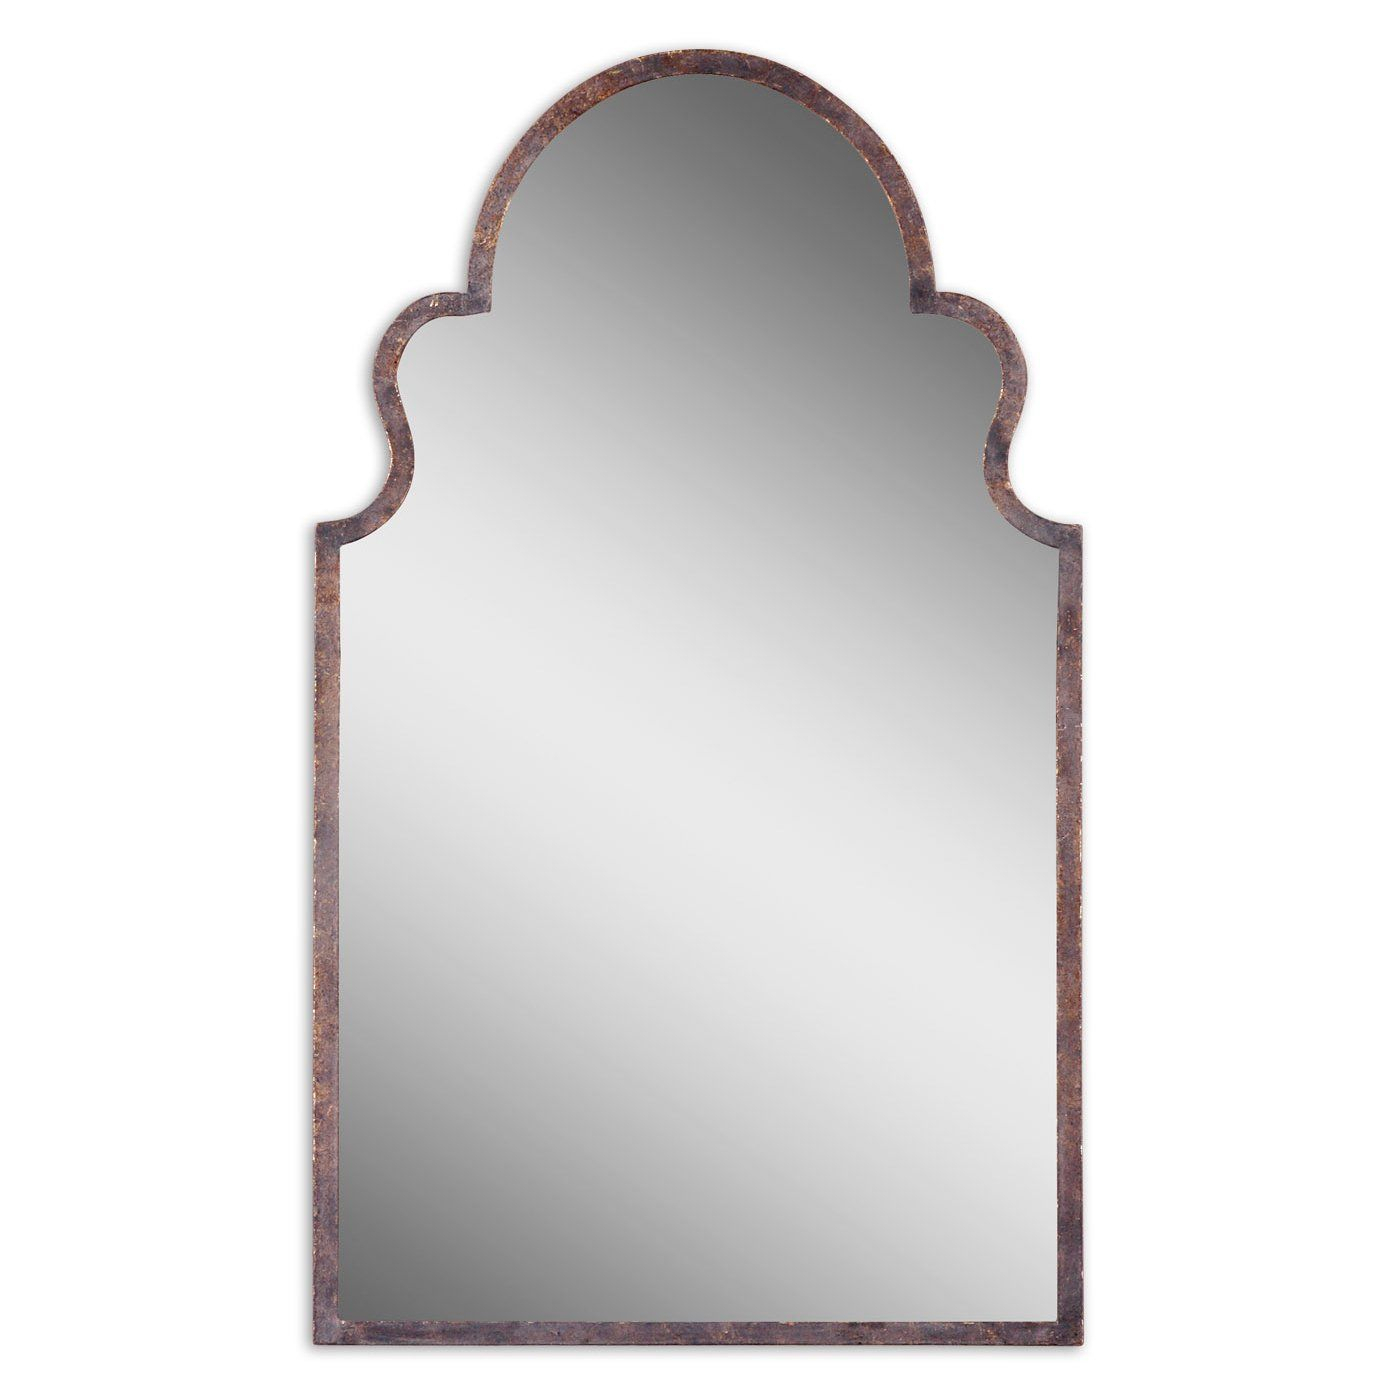 Uttermost 12668 P Brayden Arch Wall Mirror | Pool Bath Regarding Fifi Contemporary Arch Wall Mirrors (View 6 of 20)